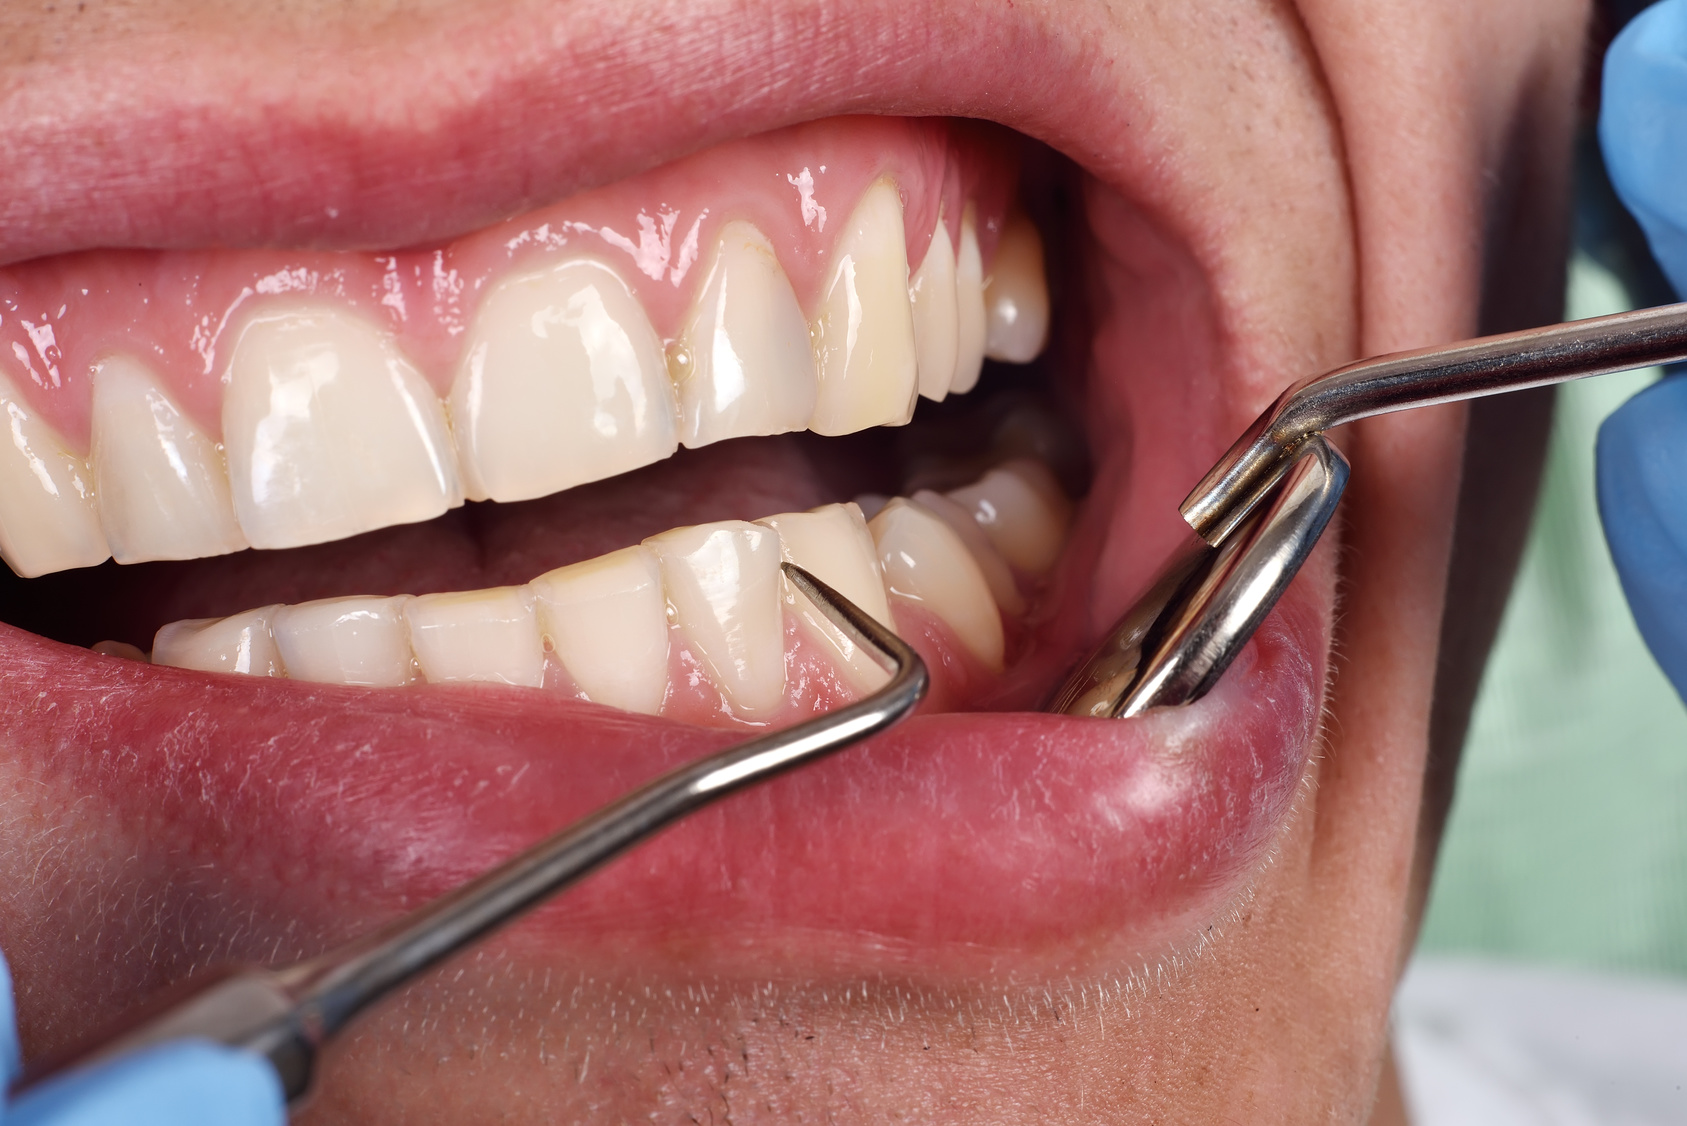 South Carolina In The Top 10 For Gum Disease